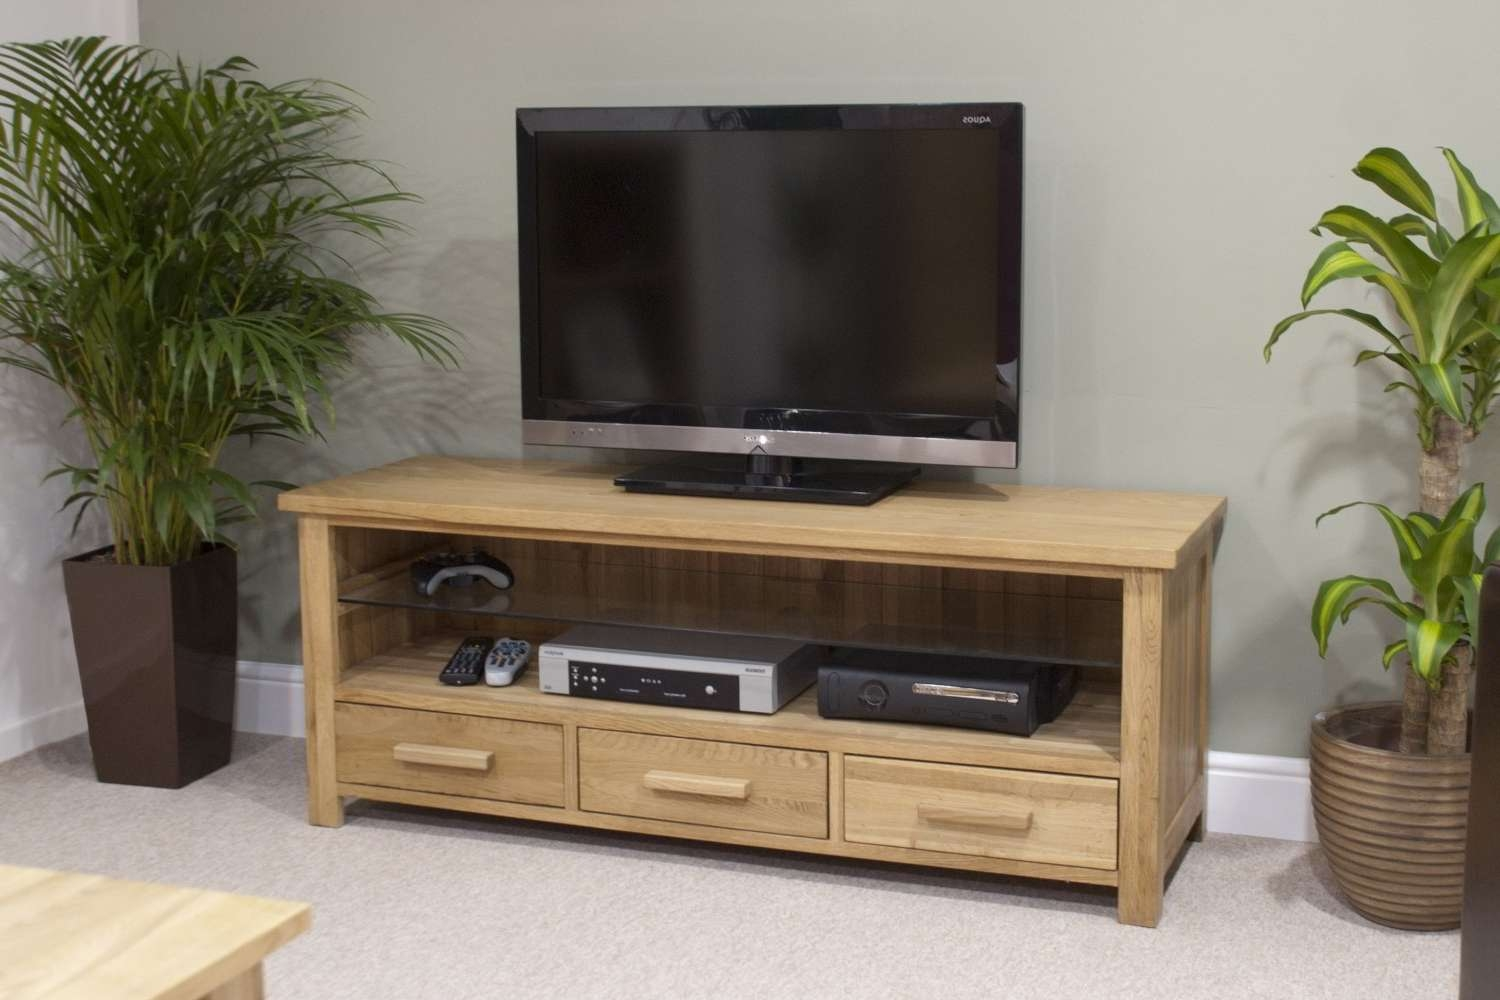 Eton Solid Oak Living Room Furniture Widescreen Tv Cabinet Stand Within Oak Furniture Tv Stands (View 3 of 20)